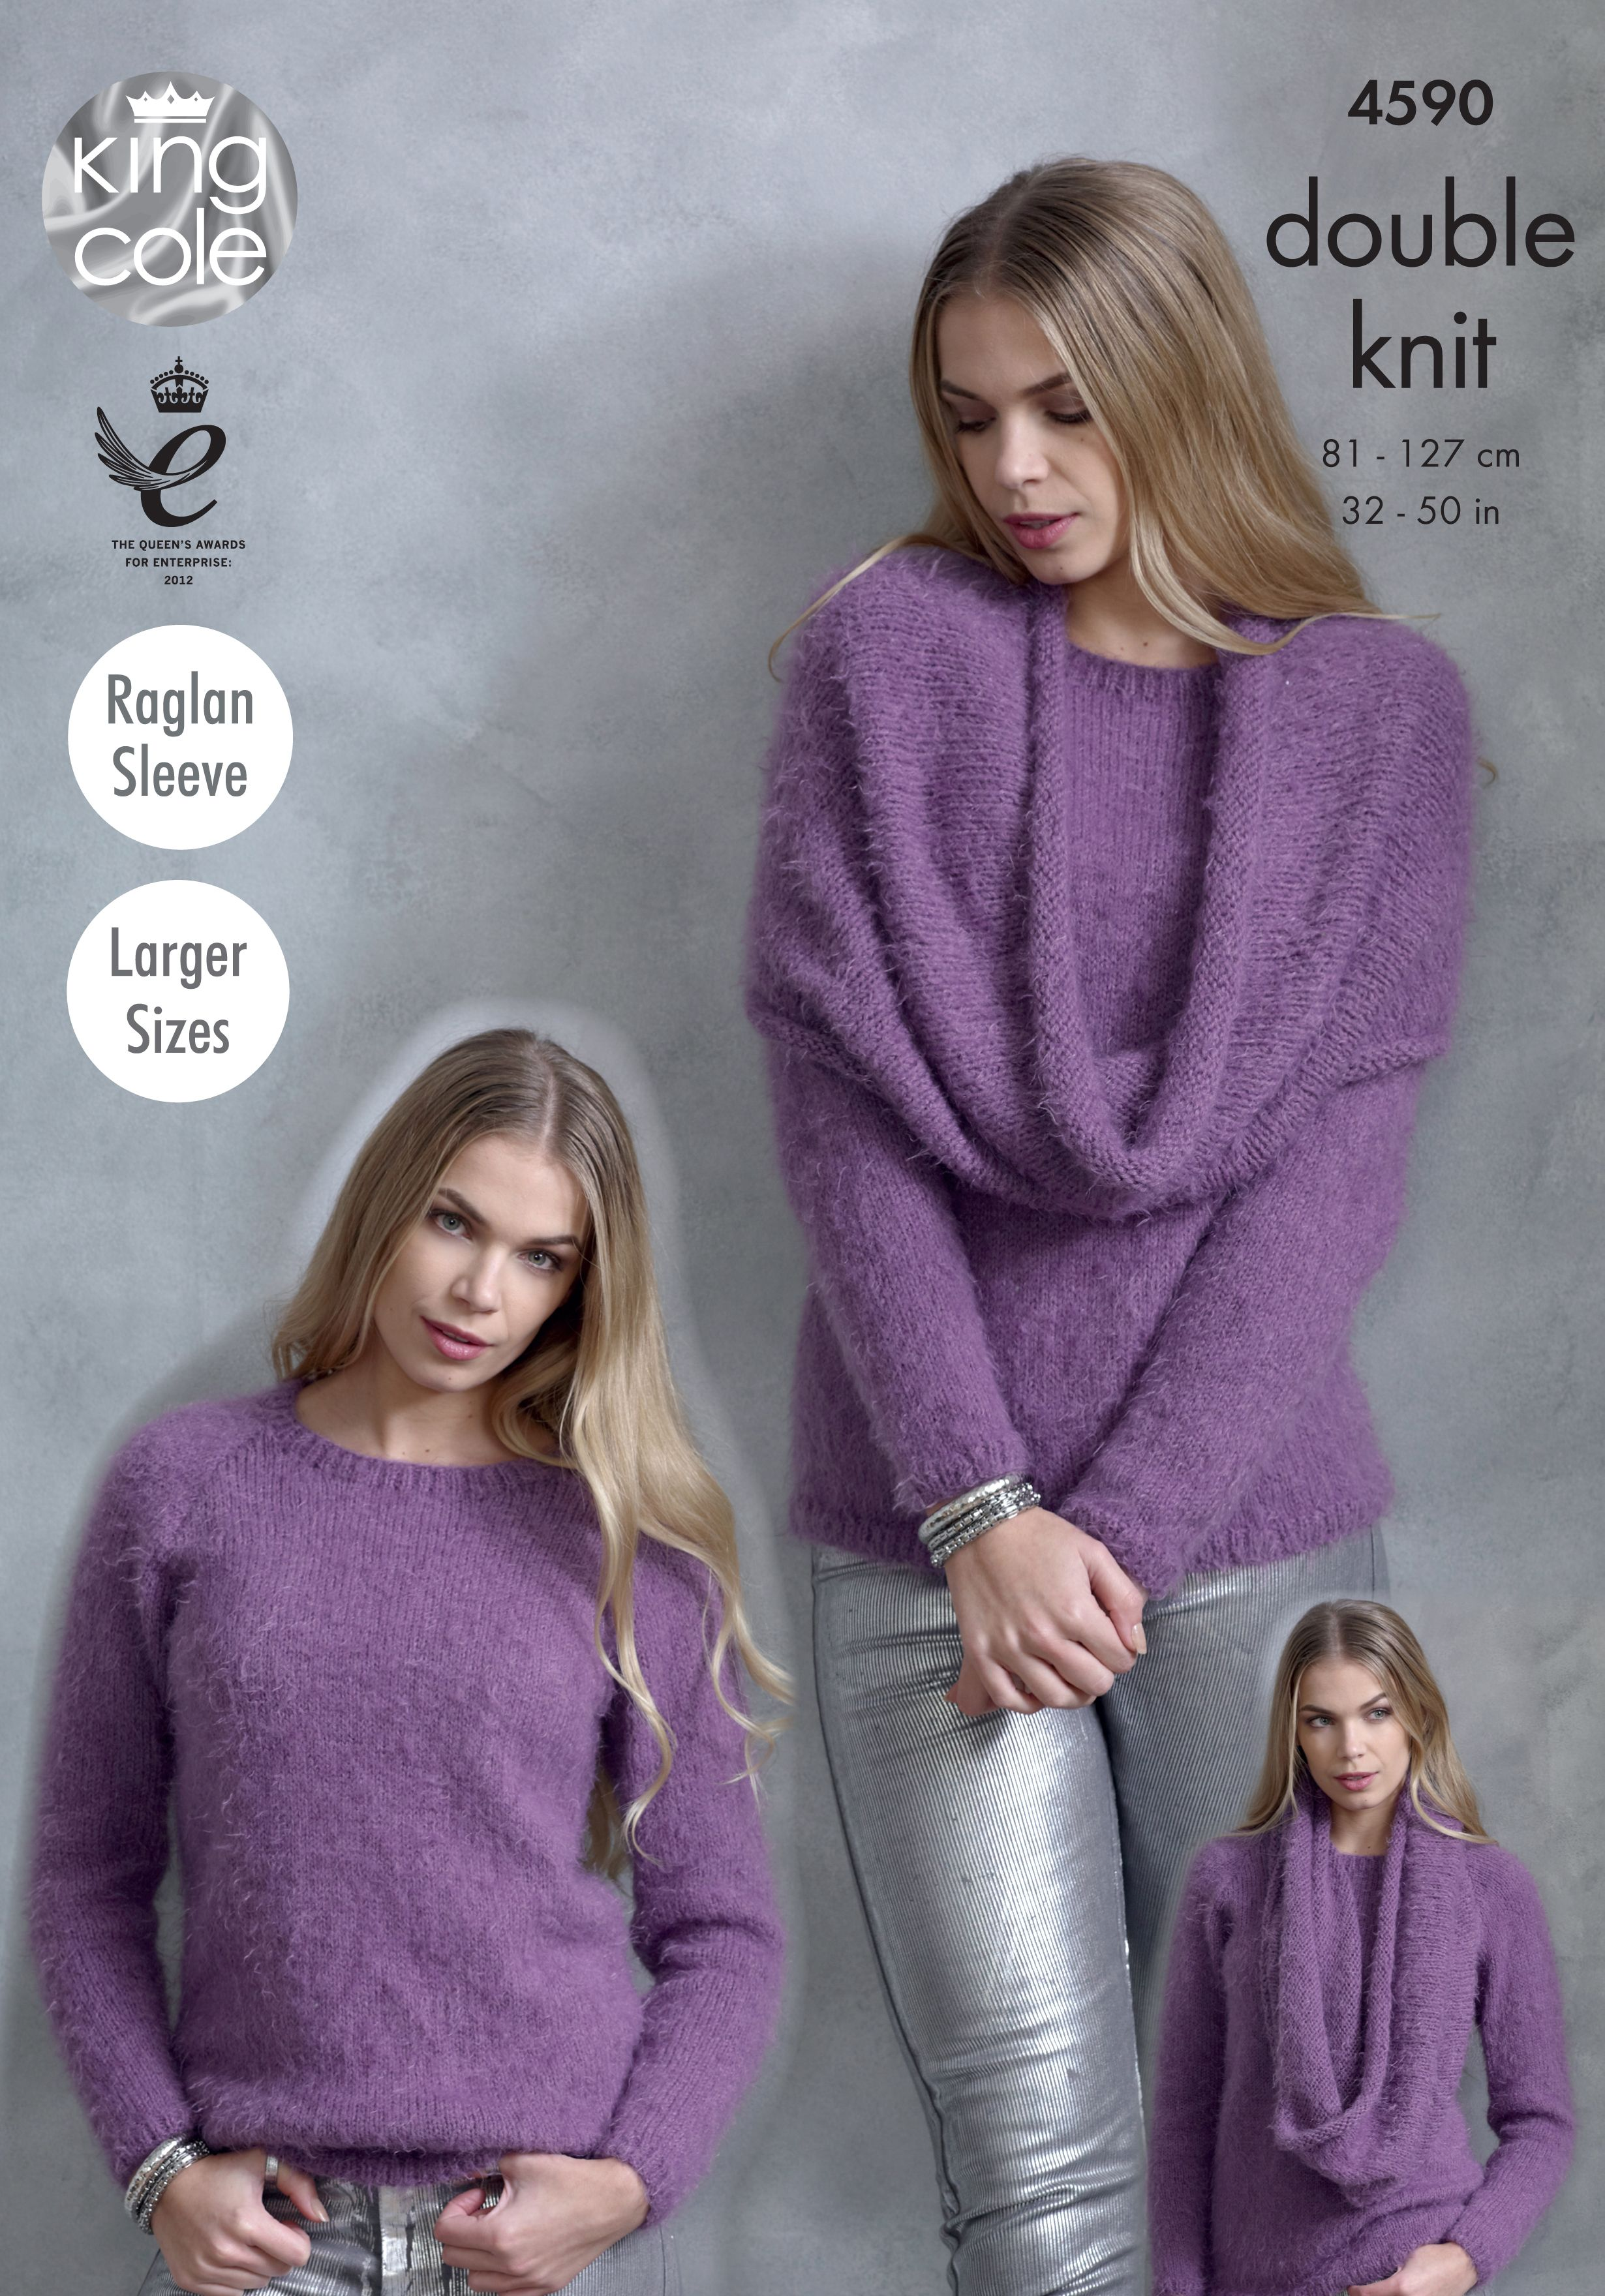 Knitted sweater poncho snood king cole embrace pinterest sweaters poncho snood knitted with embrace dk king cole bankloansurffo Images